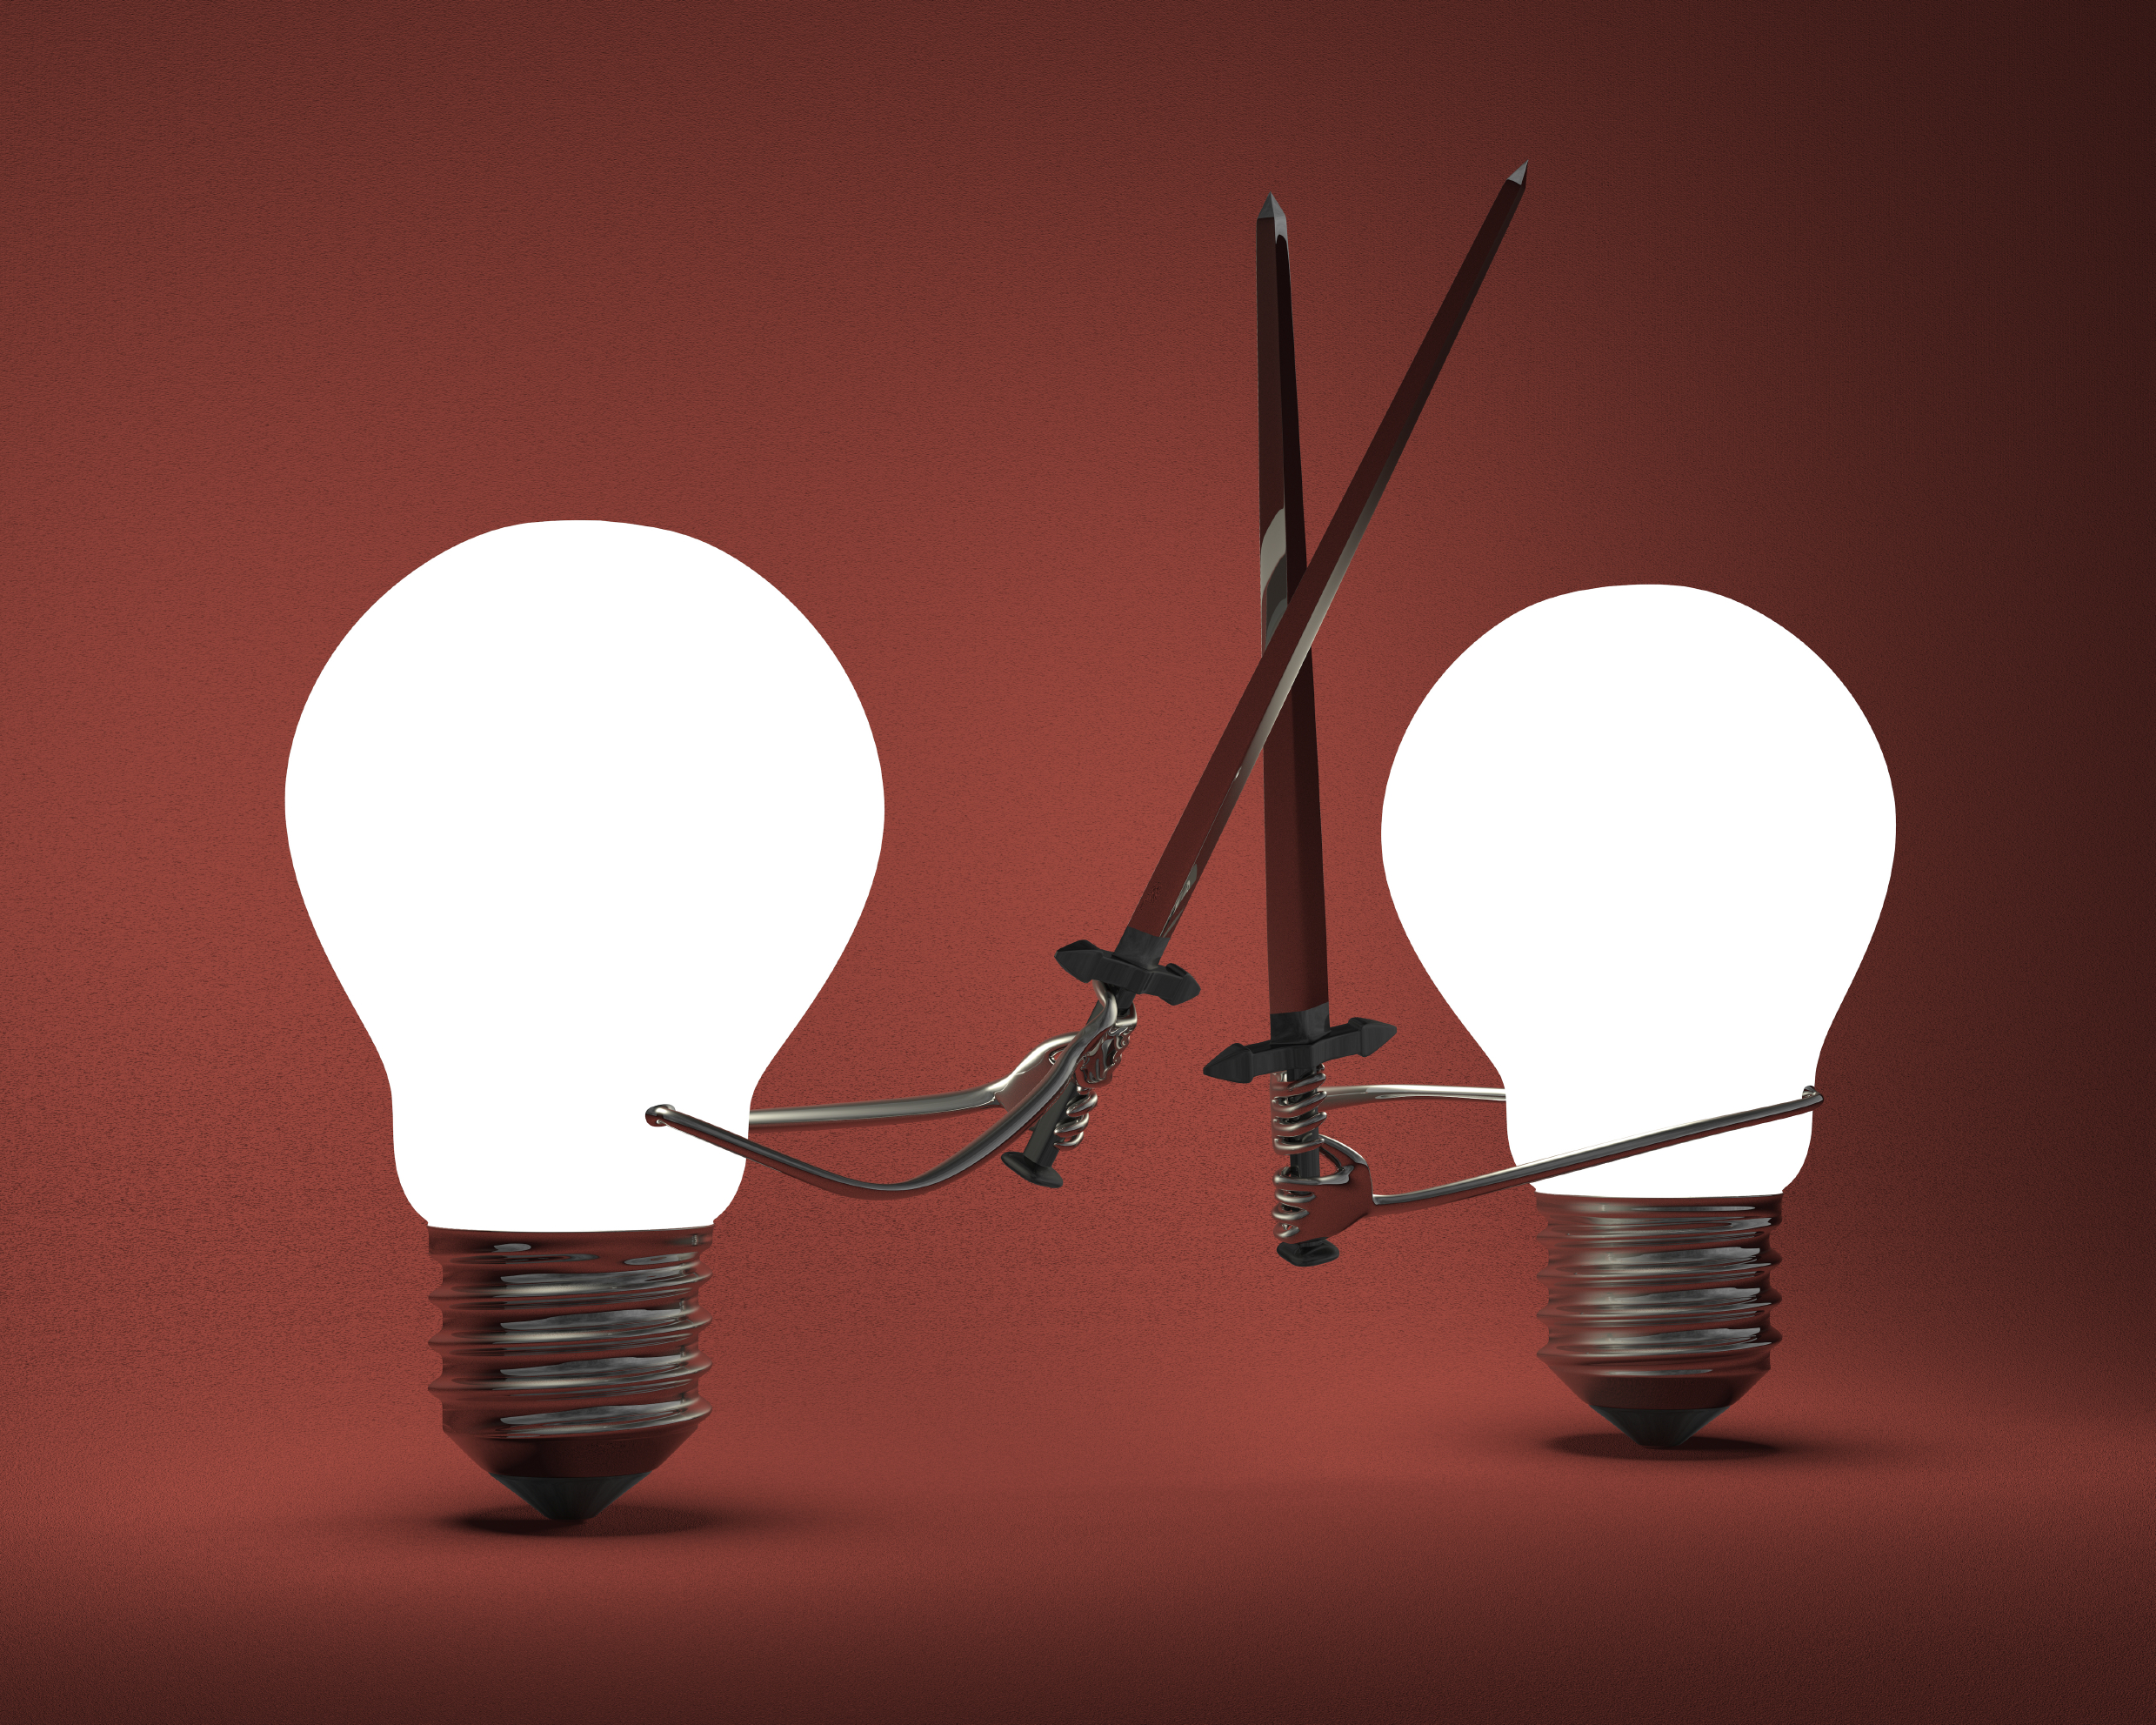 Glowing light bulbs fighting with greatswords on red